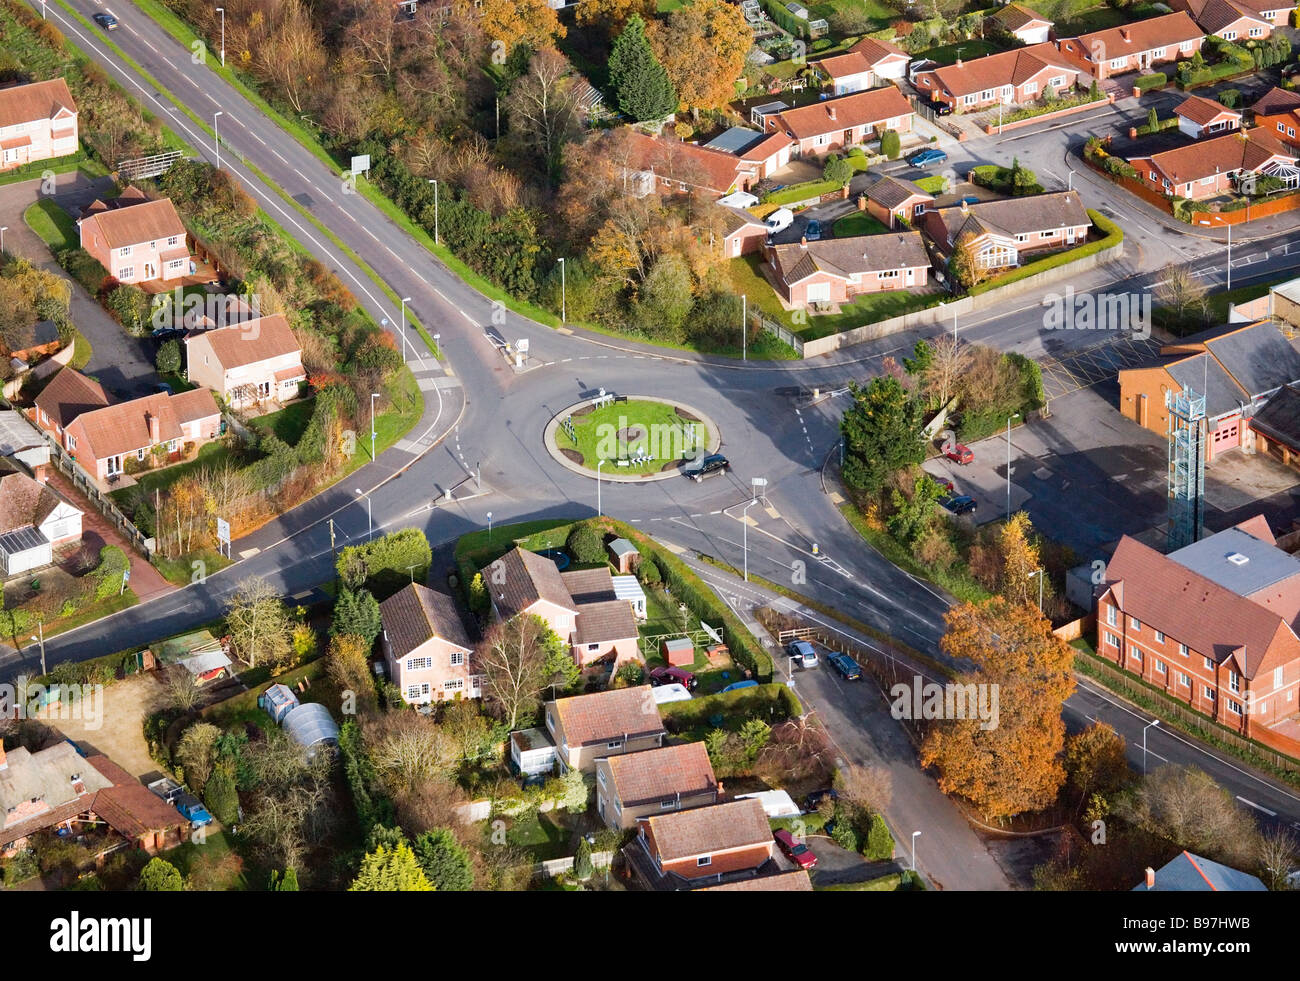 Aerial view showing a roundabout junction. Verwood, Dorset, UK. - Stock Image